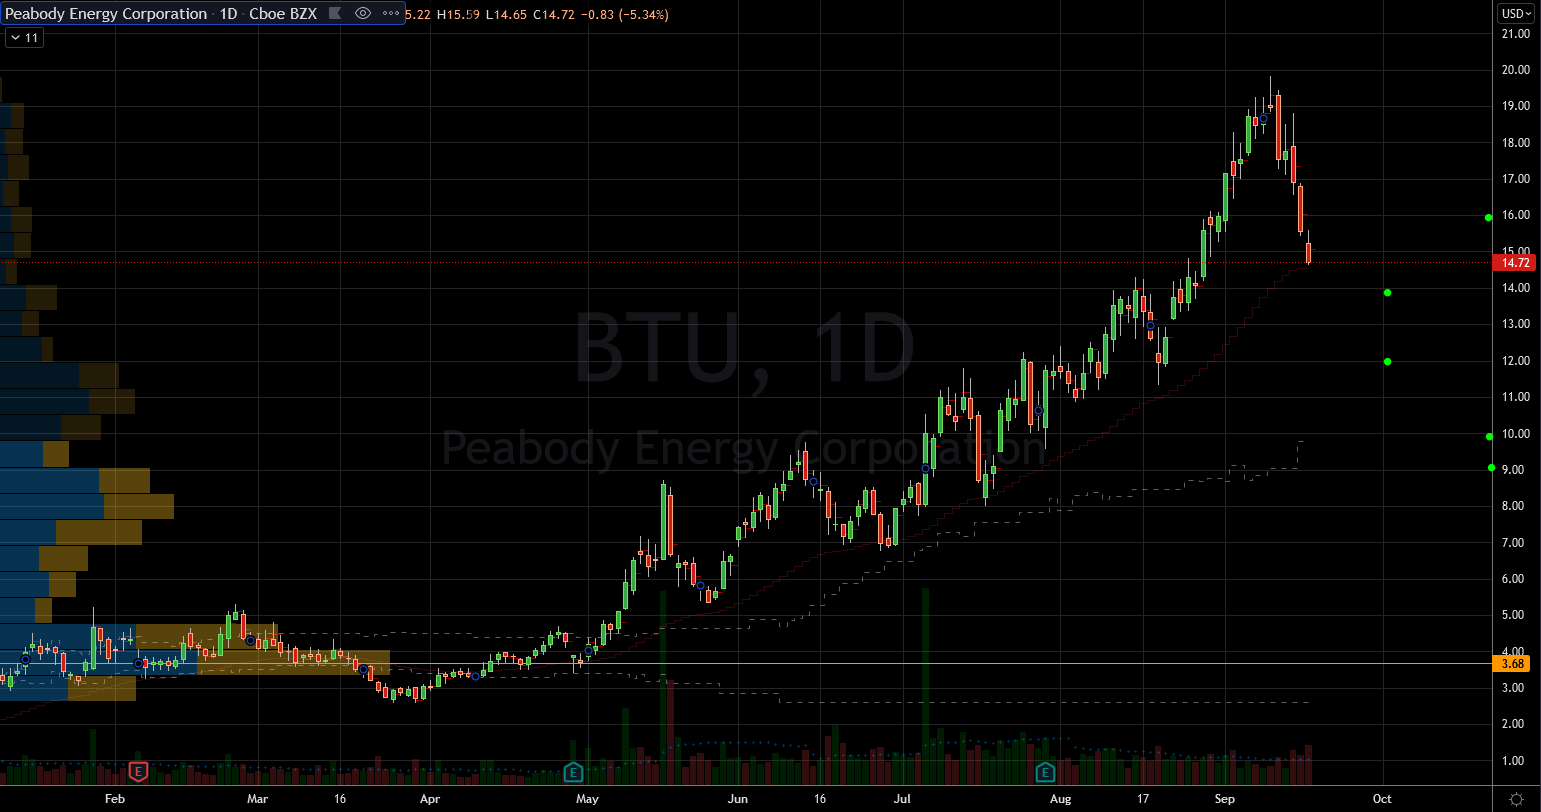 Stocks to Buy: Peabody(BTU) Stock Chart Showing Potential Base